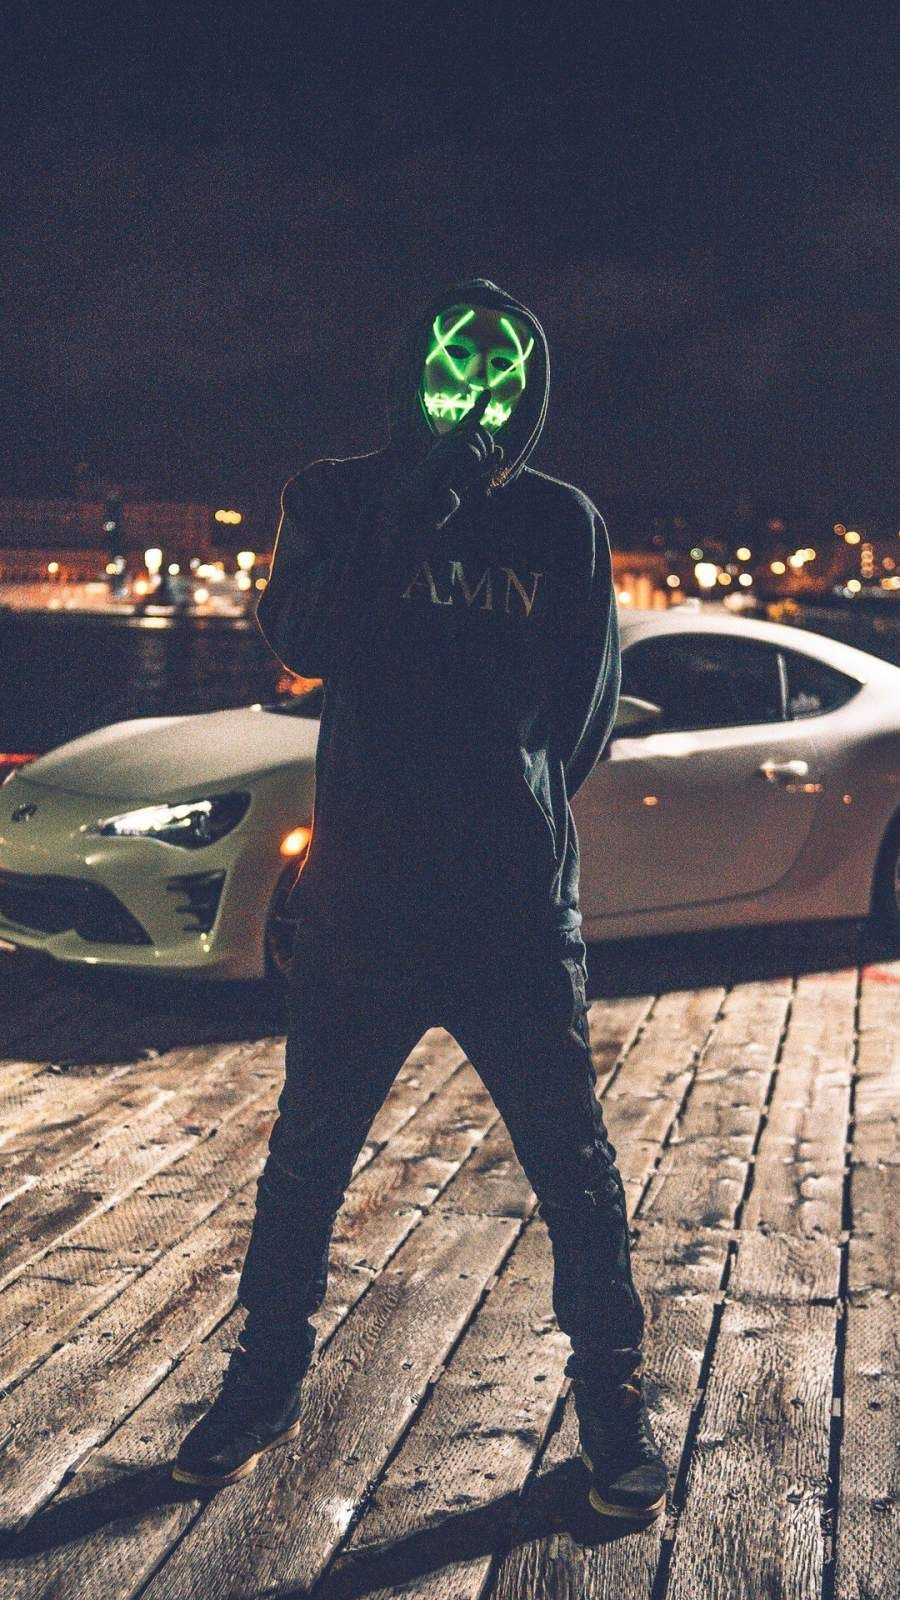 Mask Man With Car Iphone Wallpaper Iphone Wallpaper Car Iphone Wallpaper Masked Man Anonymous mask guy white car road